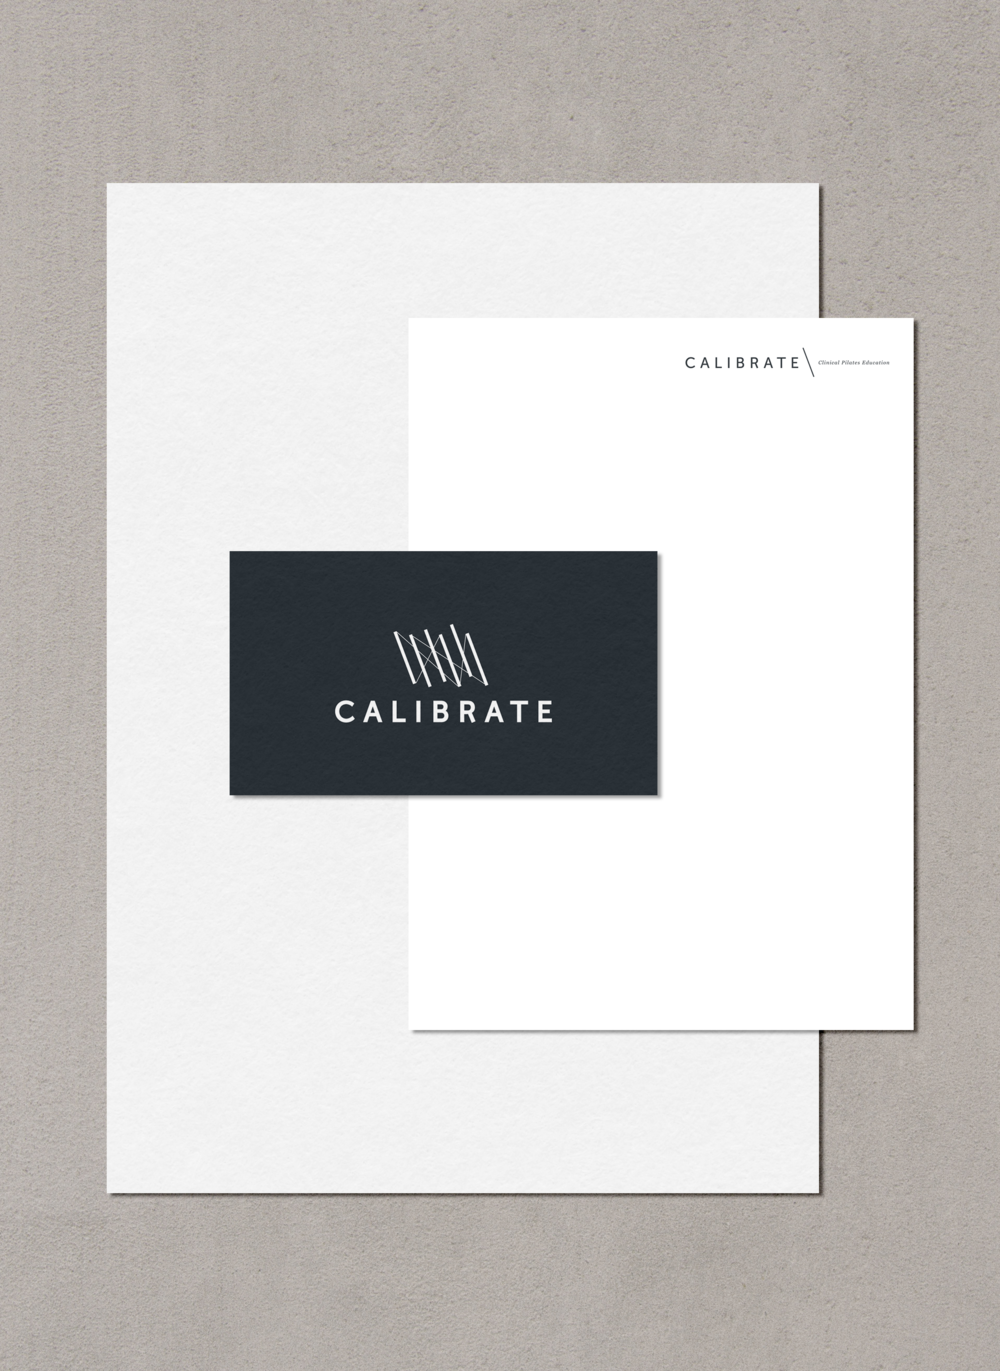 Calibrate Pilates logos on a business card, a letterhead, and a concrete background